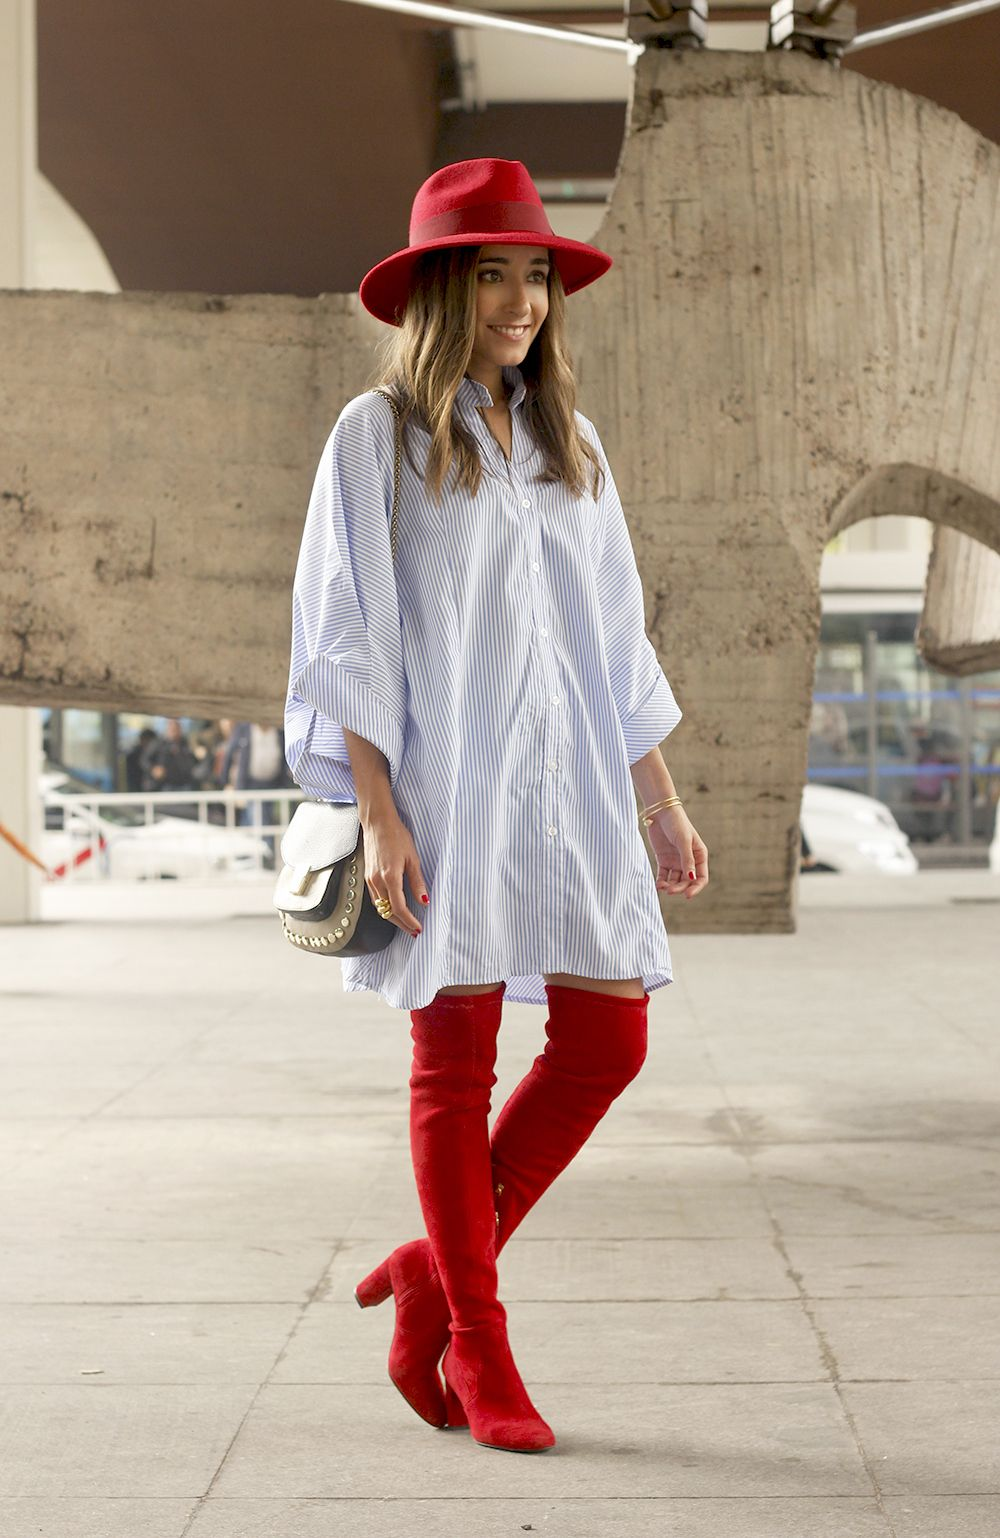 Over Red hautes The Knee Striped Dress BootsBottes With XZPuki